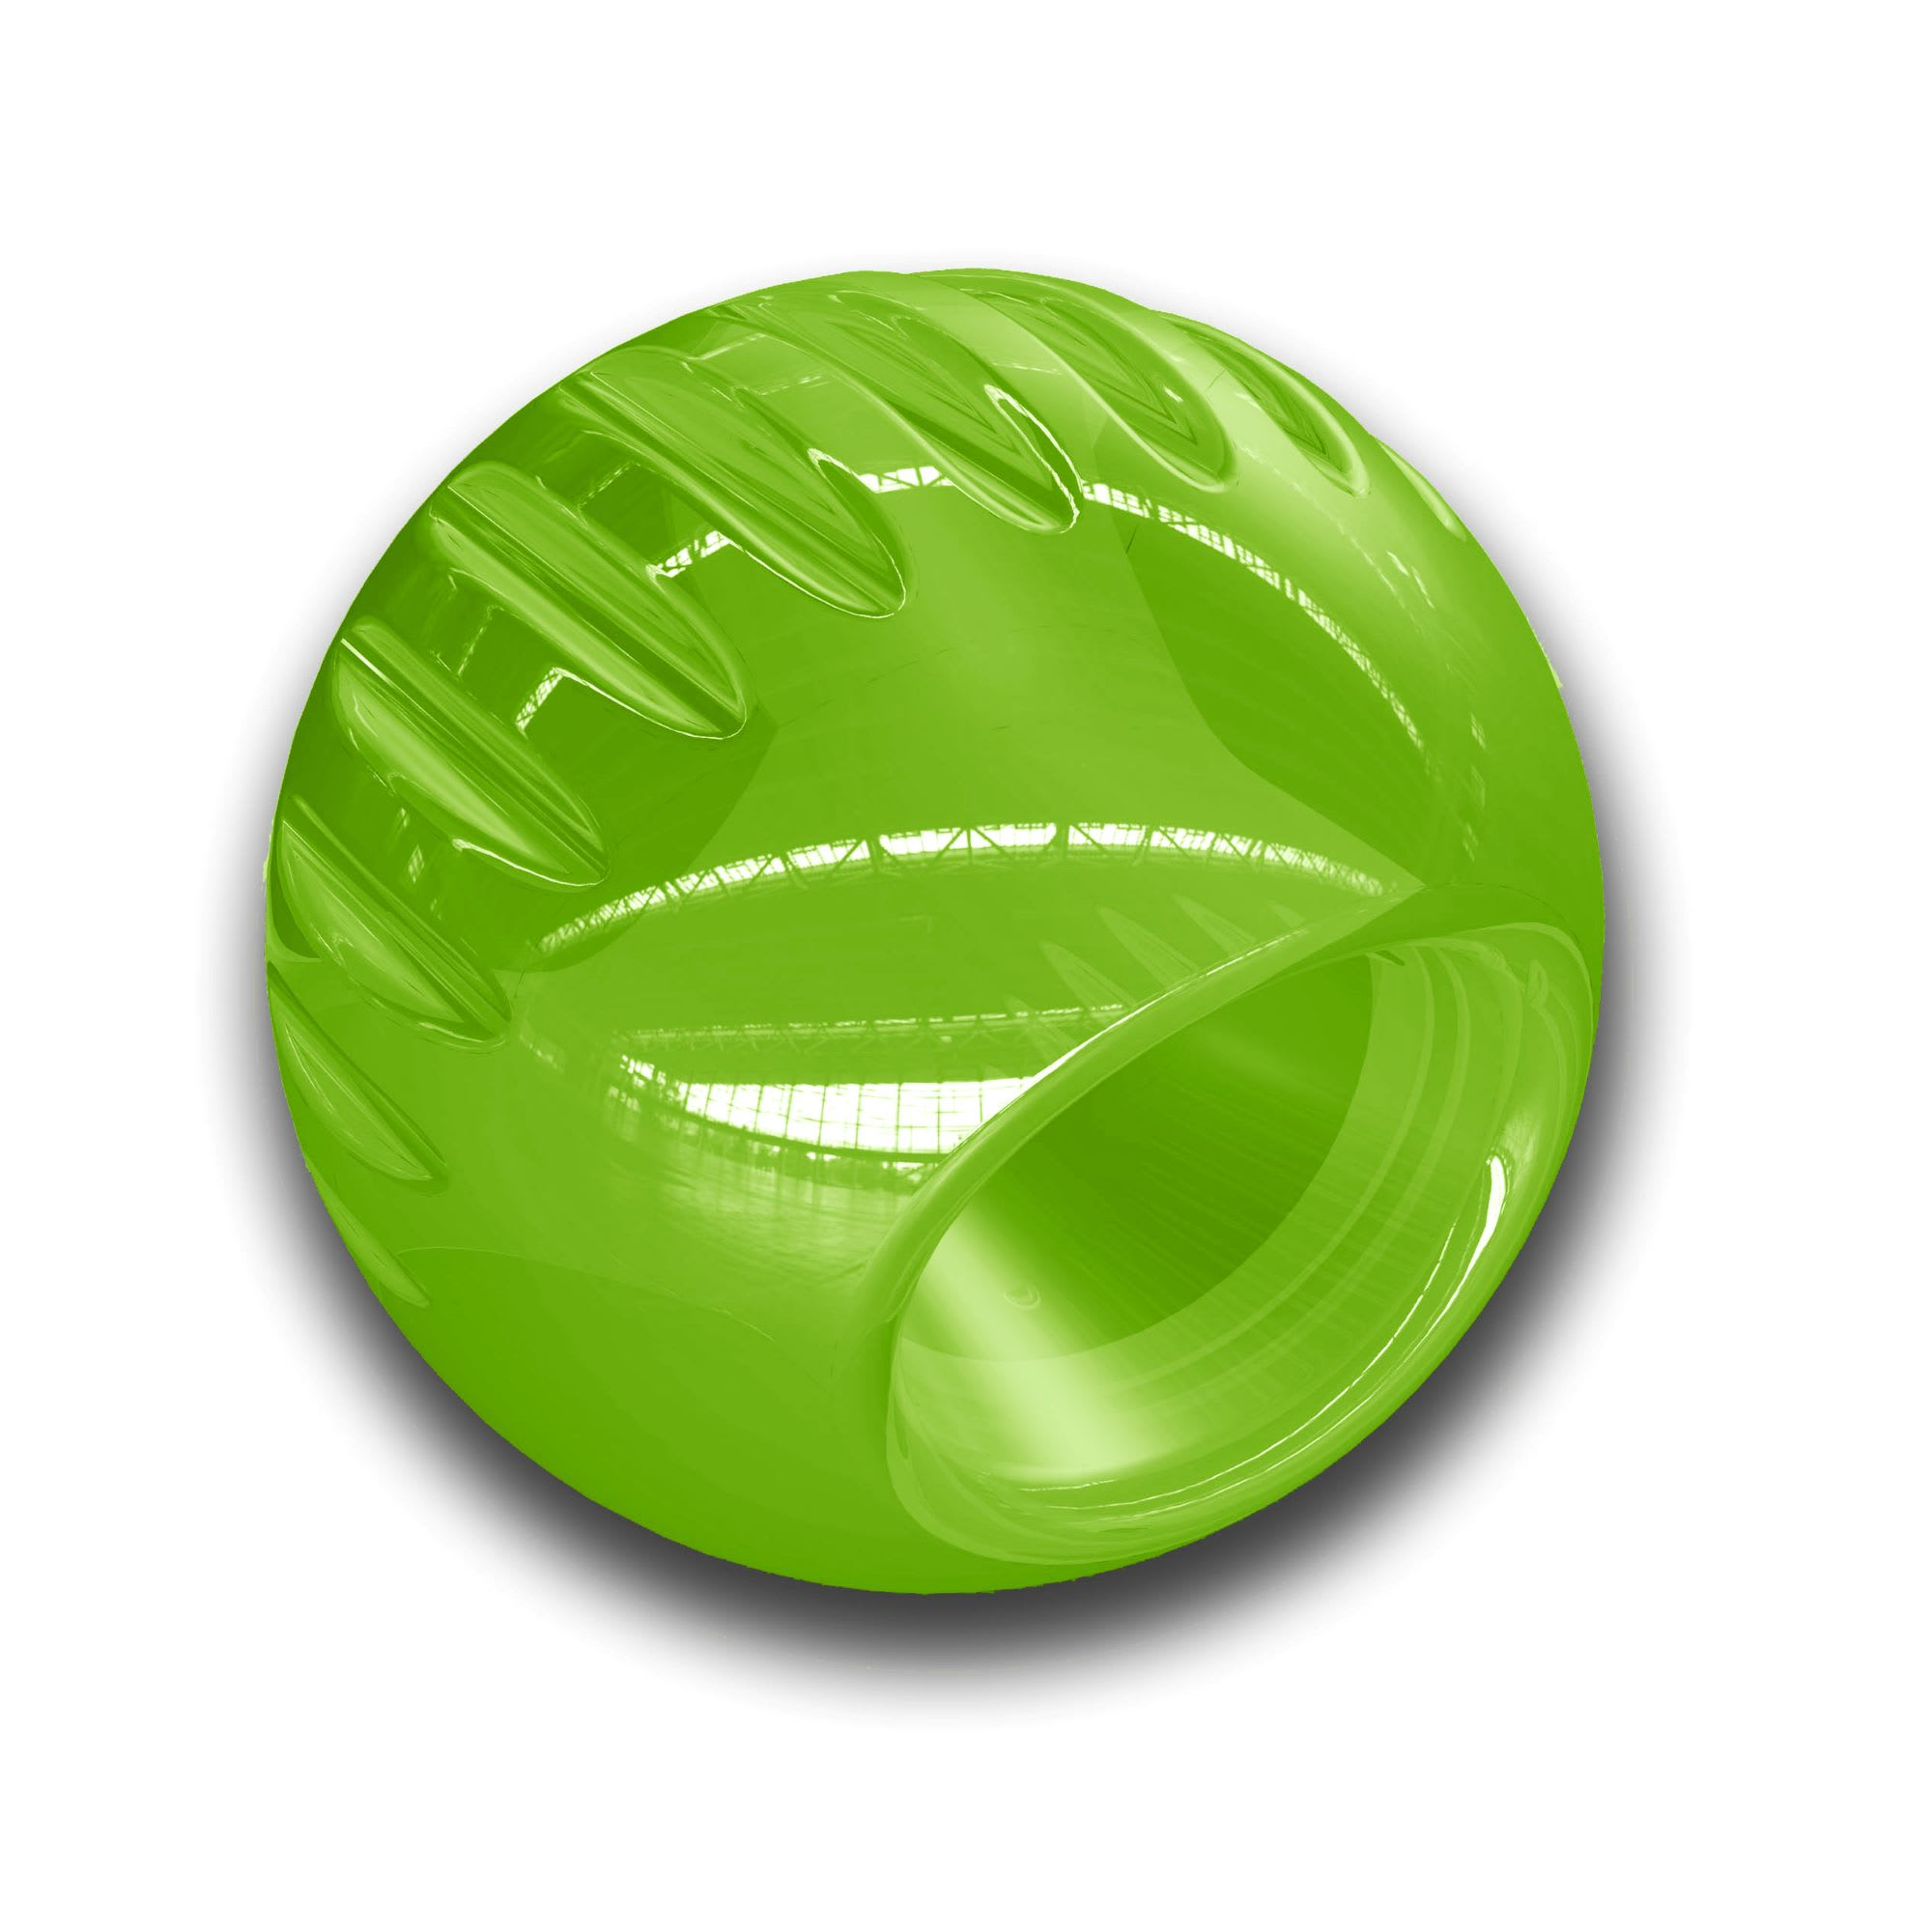 Bionic Translucent Green Ball Dog Toy, Large